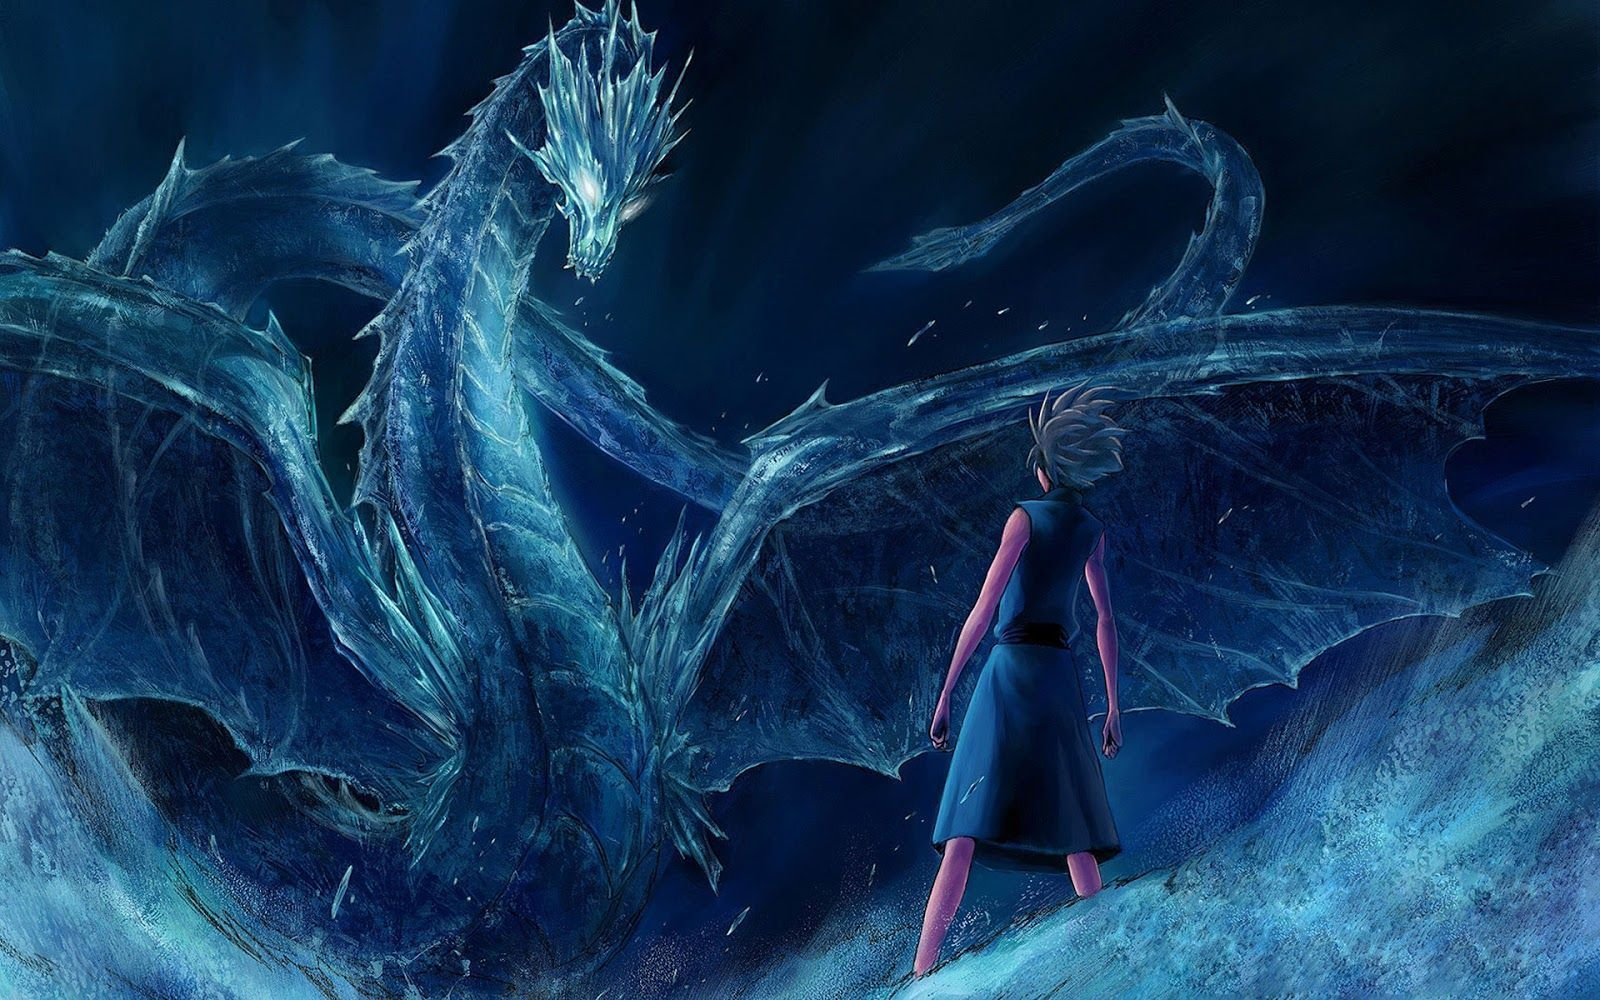 Wallpapers For Ice Dragon Wallpaper Ice Dragon Space Dragon Blue Dragon